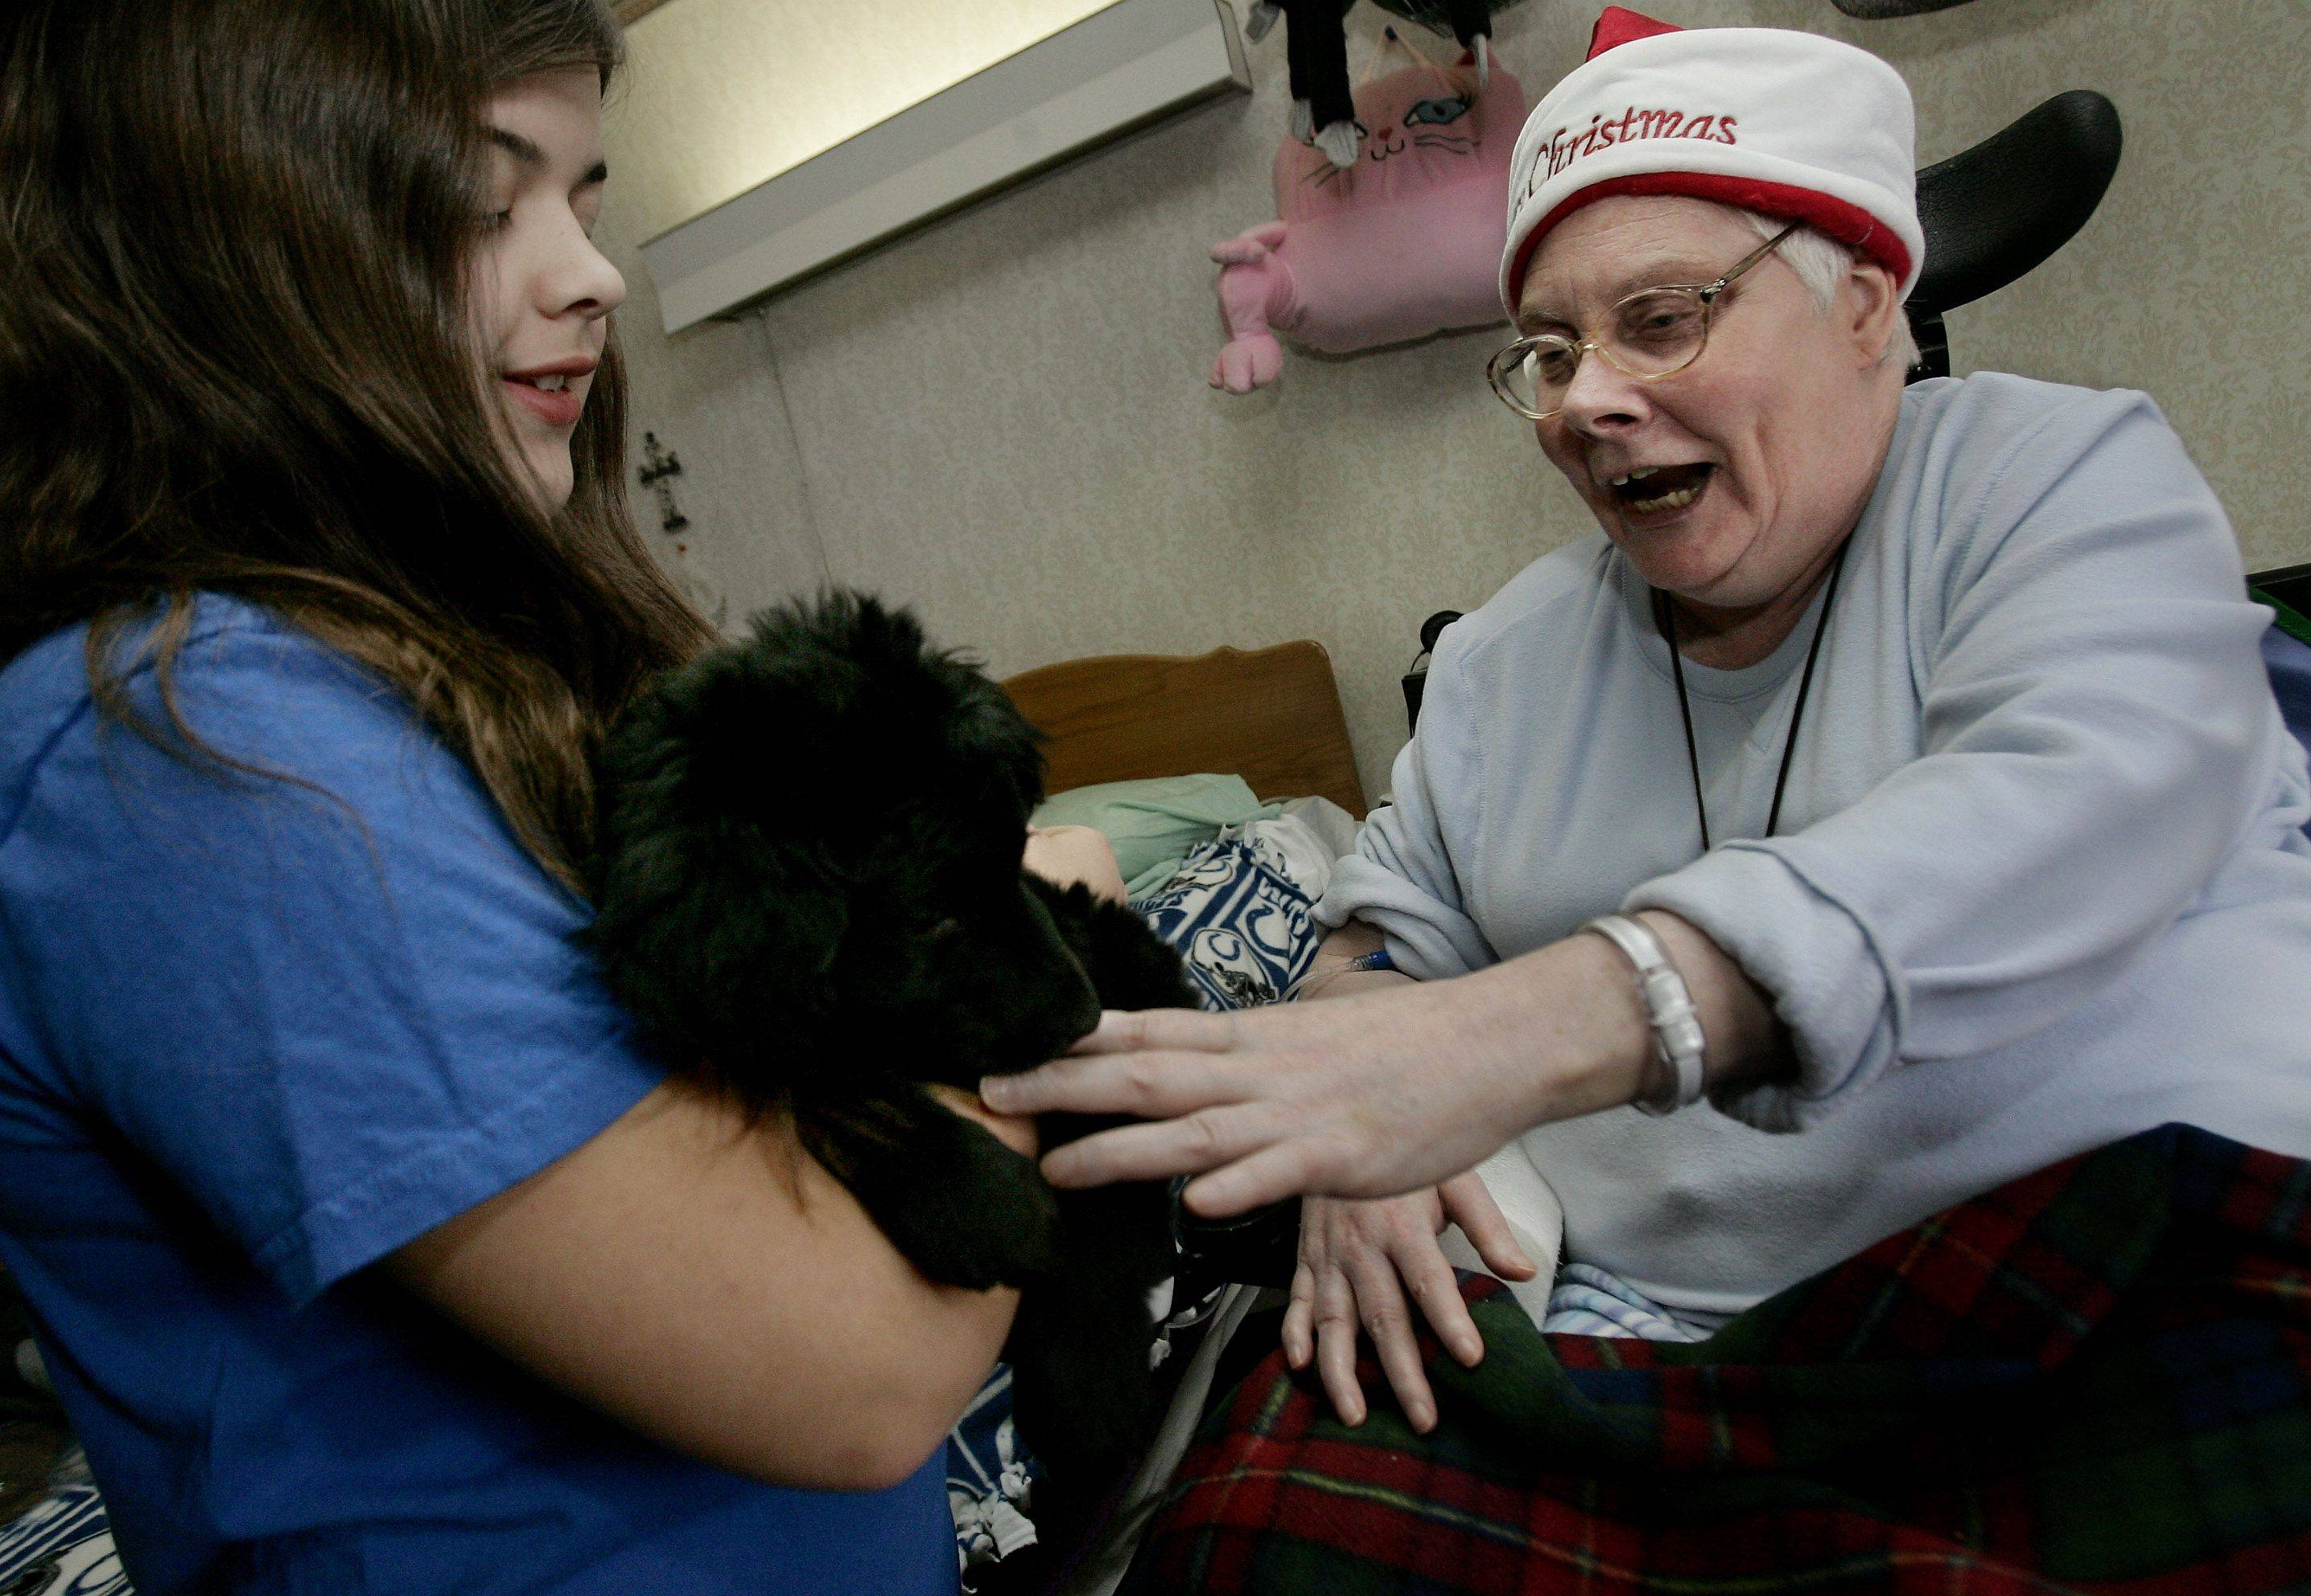 Manor Care resident Deb Brons, right, pets Josie, a special needs puppy, held by Lisa Severini, 12, of Gurnee as Libertyville's Animal Education and Rescue supporters brought their pets to greet residents in Libertyville Christmas Day.